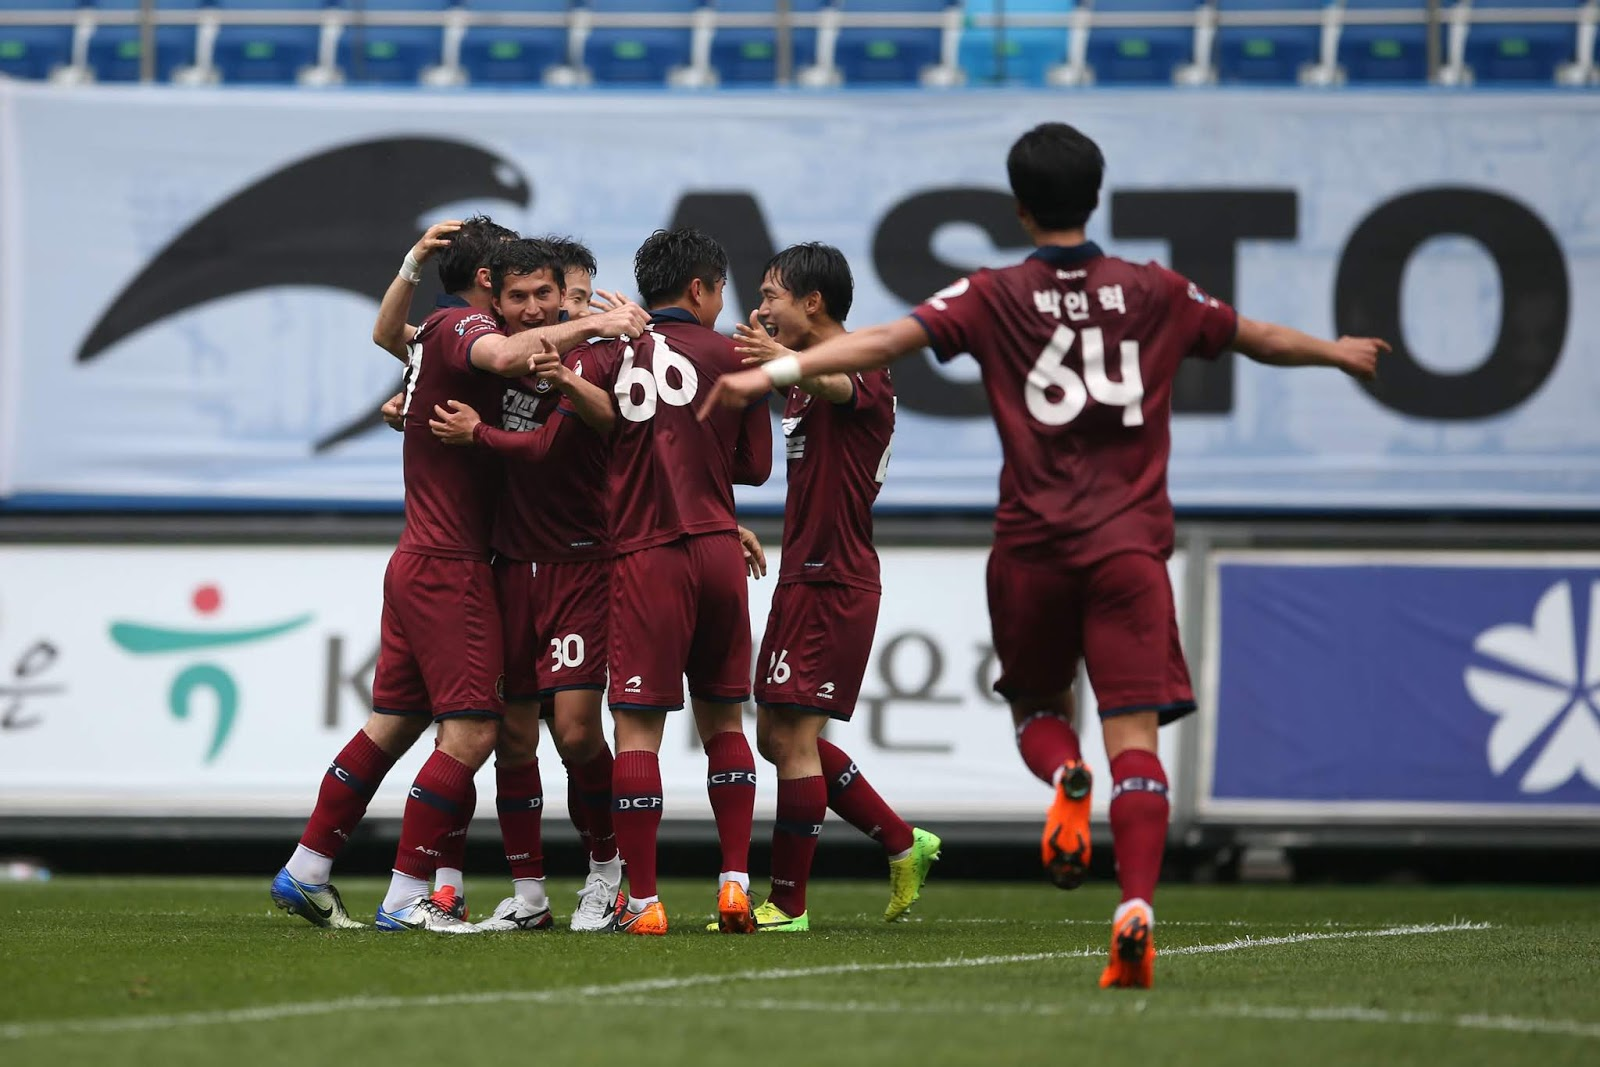 Preview: Asan Mugunghwa Vs Daejeon Citizen K League 2 Round 12